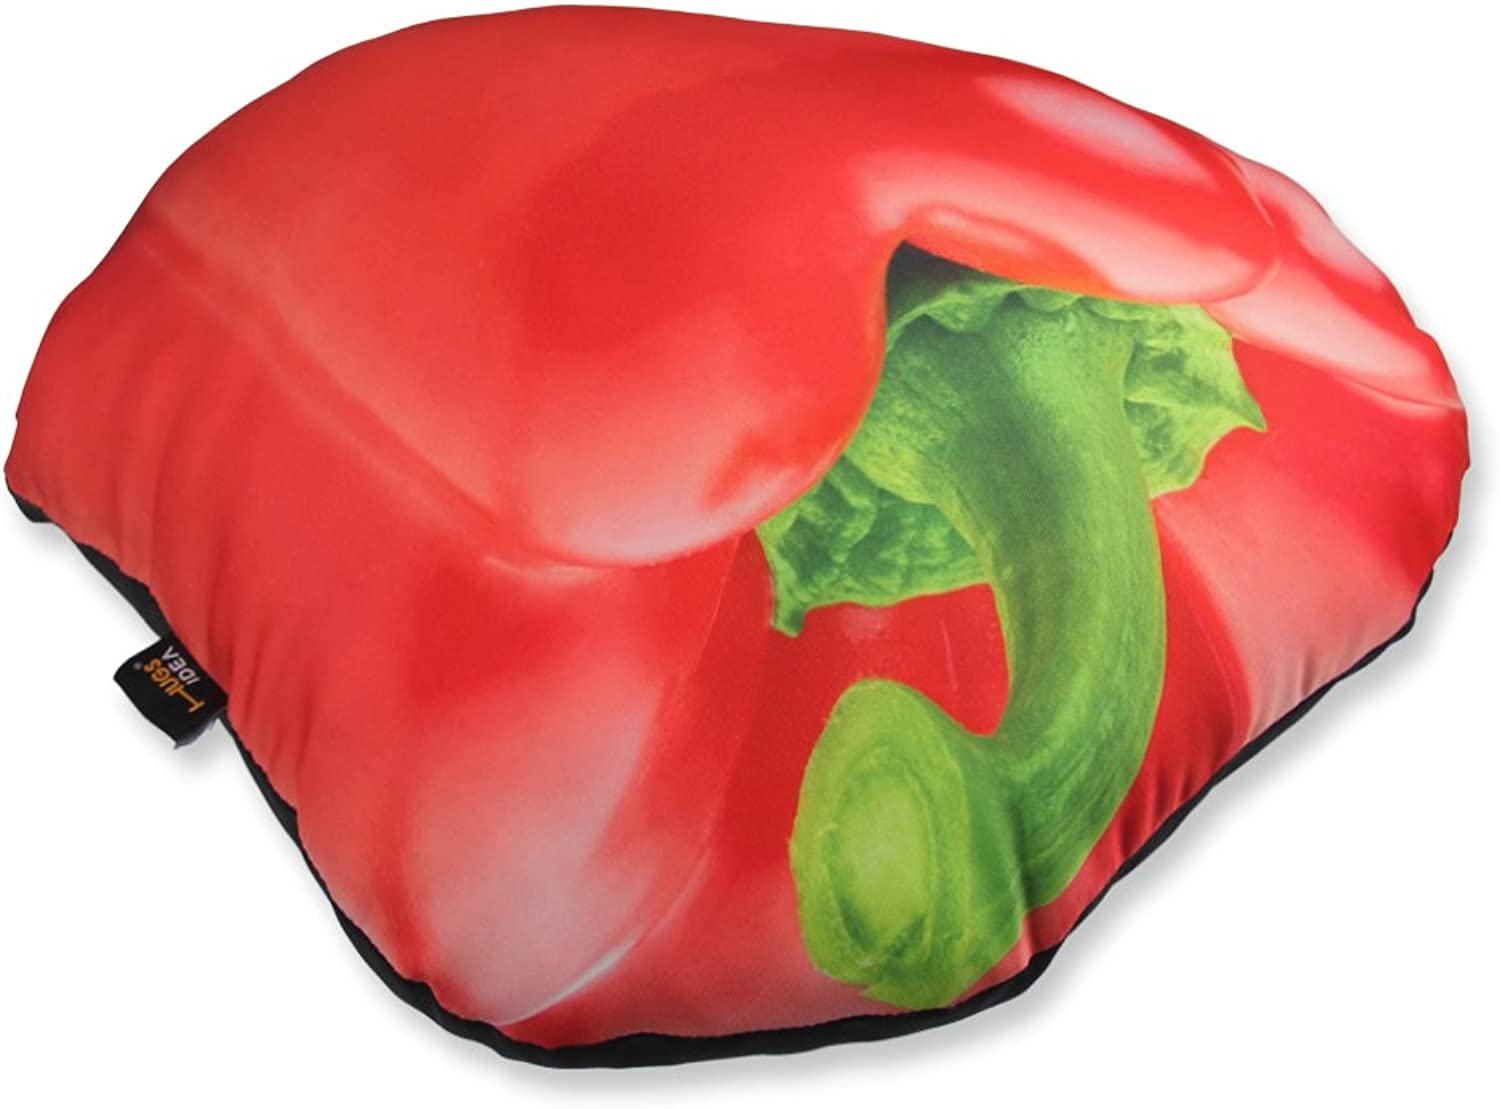 FOR U DESIGNS Round Red Pepper Shape Creative Throw Pillow Travel Outdoor Home Car Decoration Cushion